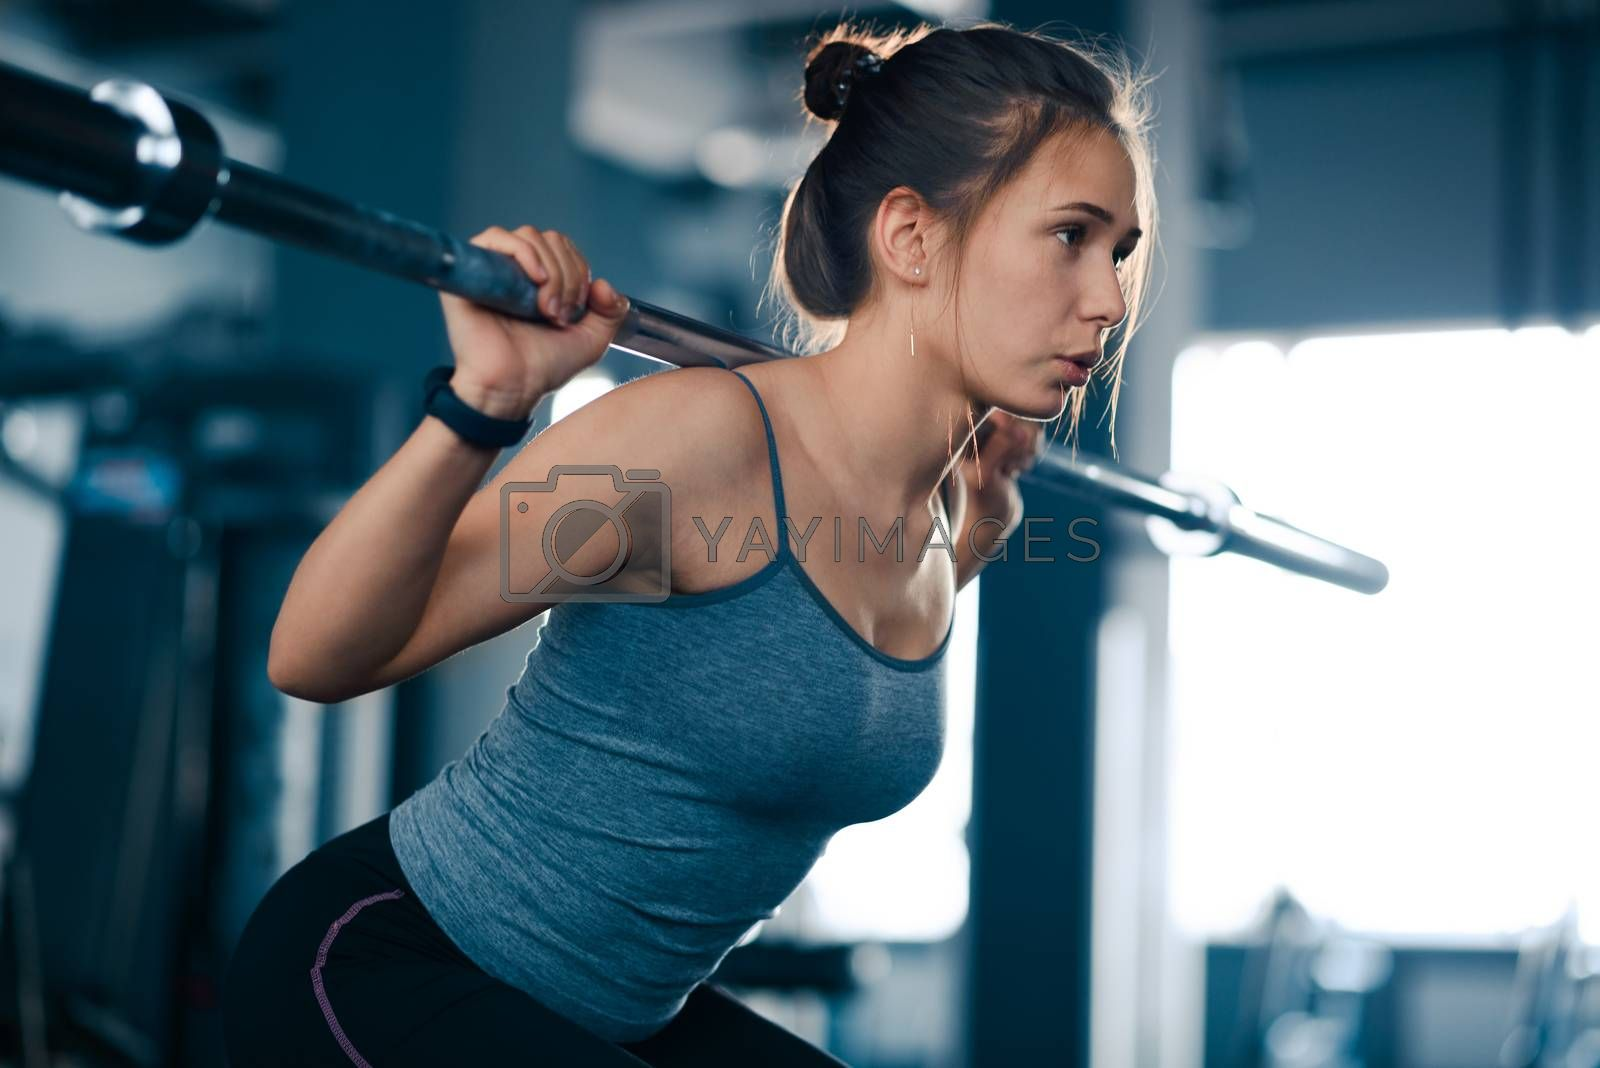 Attractive Young Sports Woman Doing Squats with Barbell in the Gym. Fitness and Healthy Lifestyle Concept.